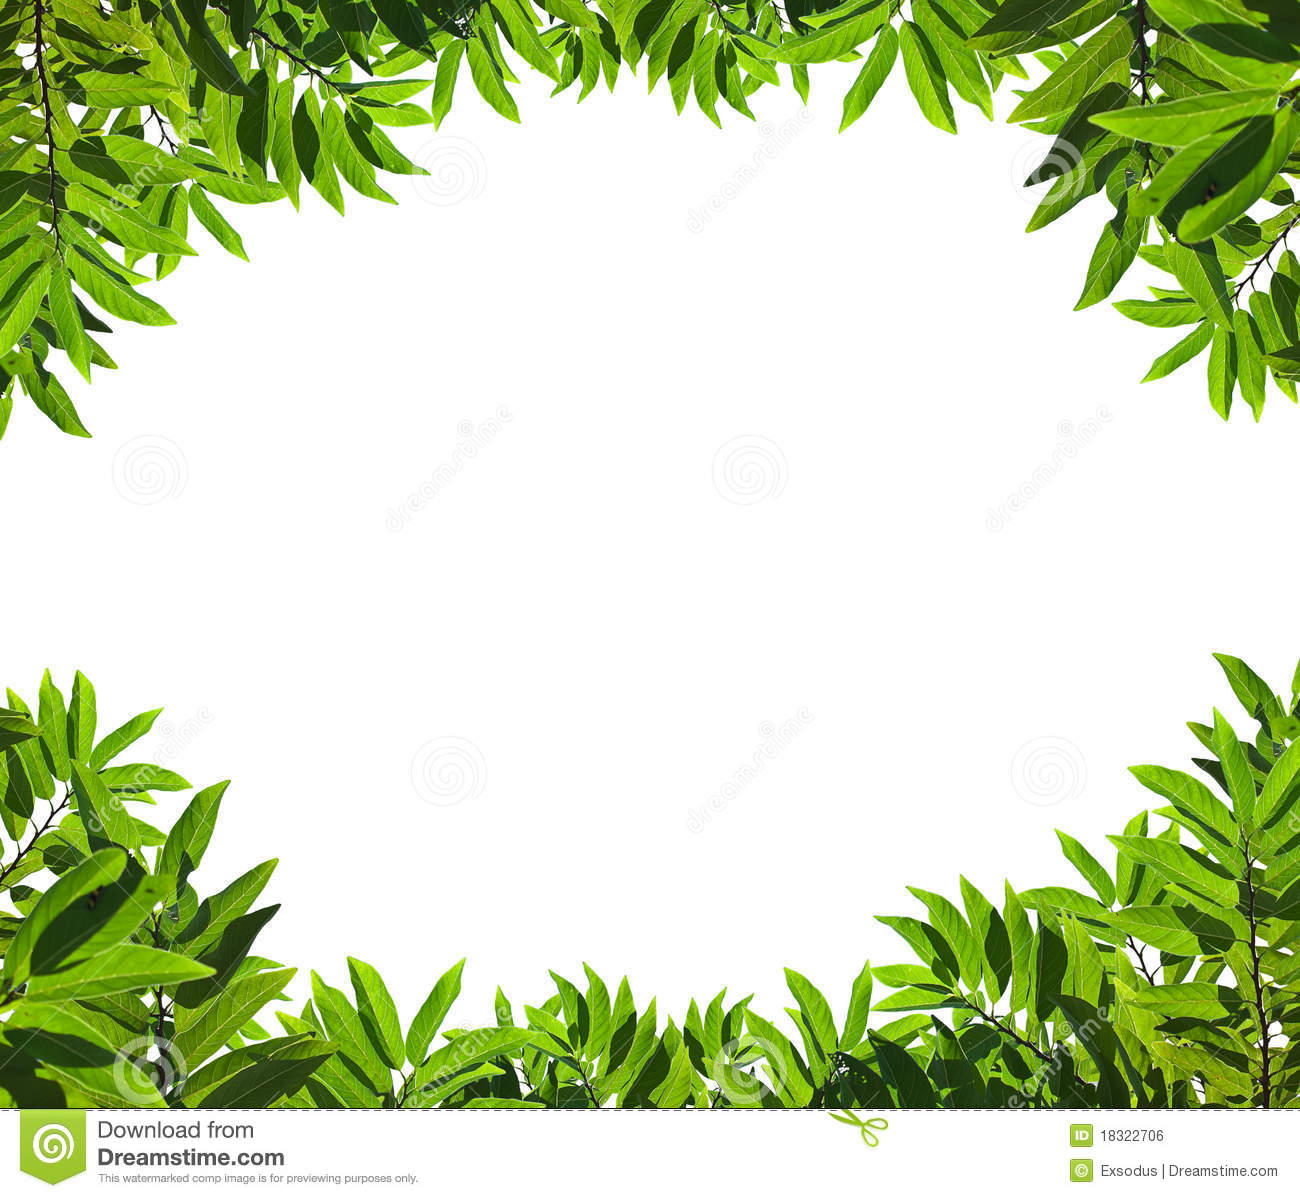 Natural green leaf frame stock photo. Image of environment - 18322706